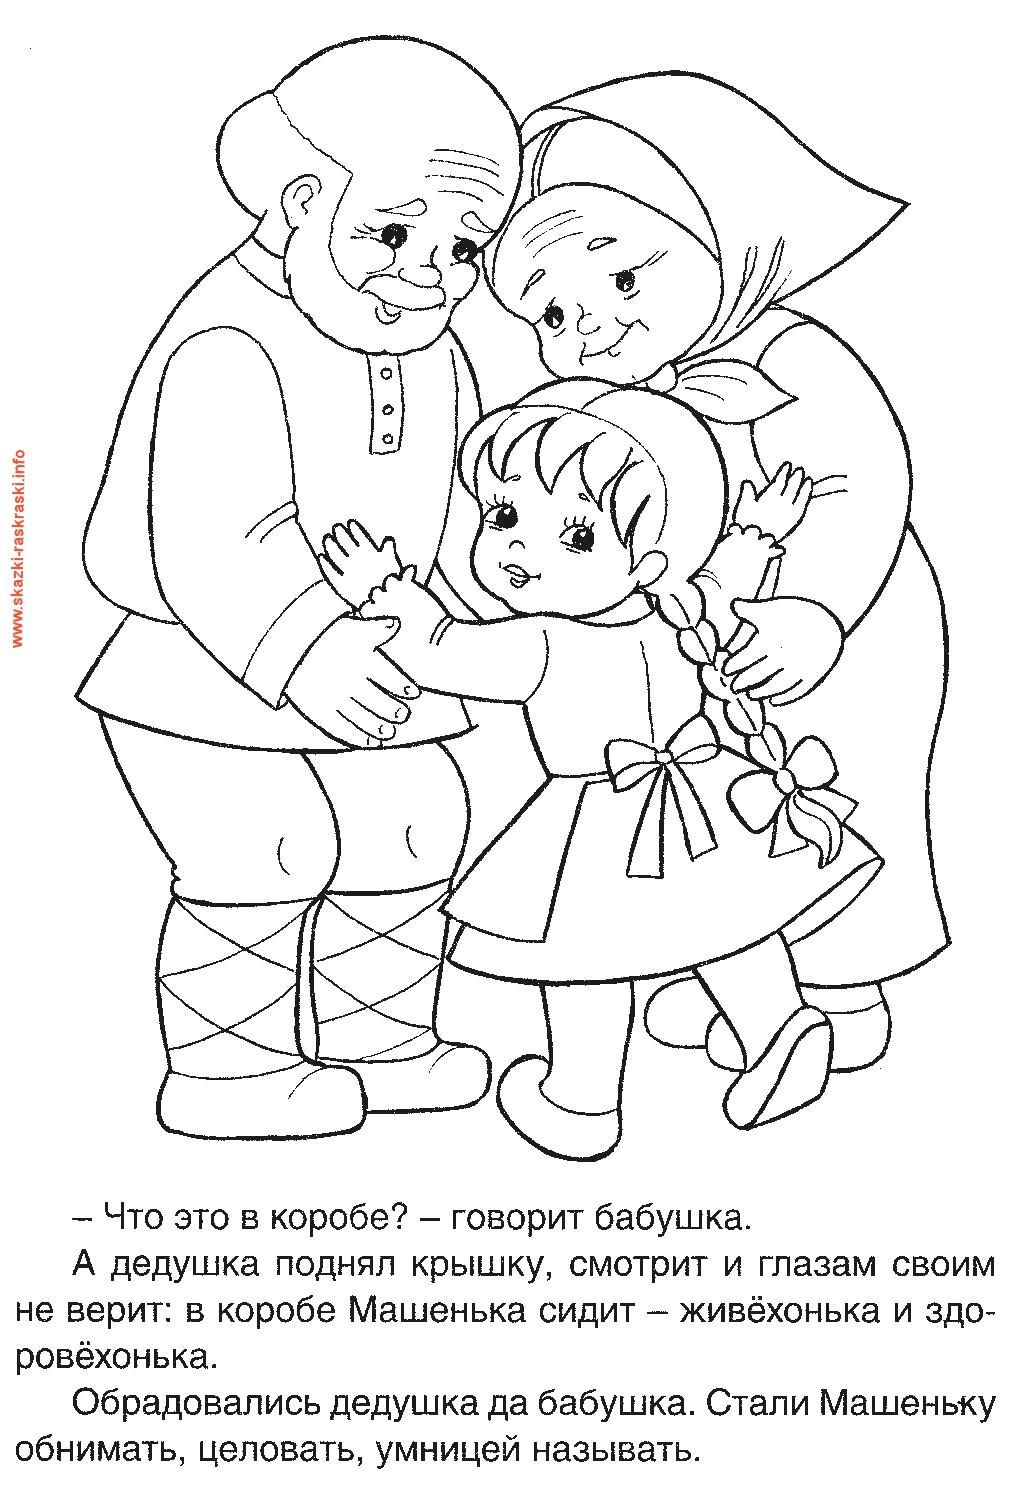 Coloring coloring pages books for children tales Masha meet his grandparents and they hug